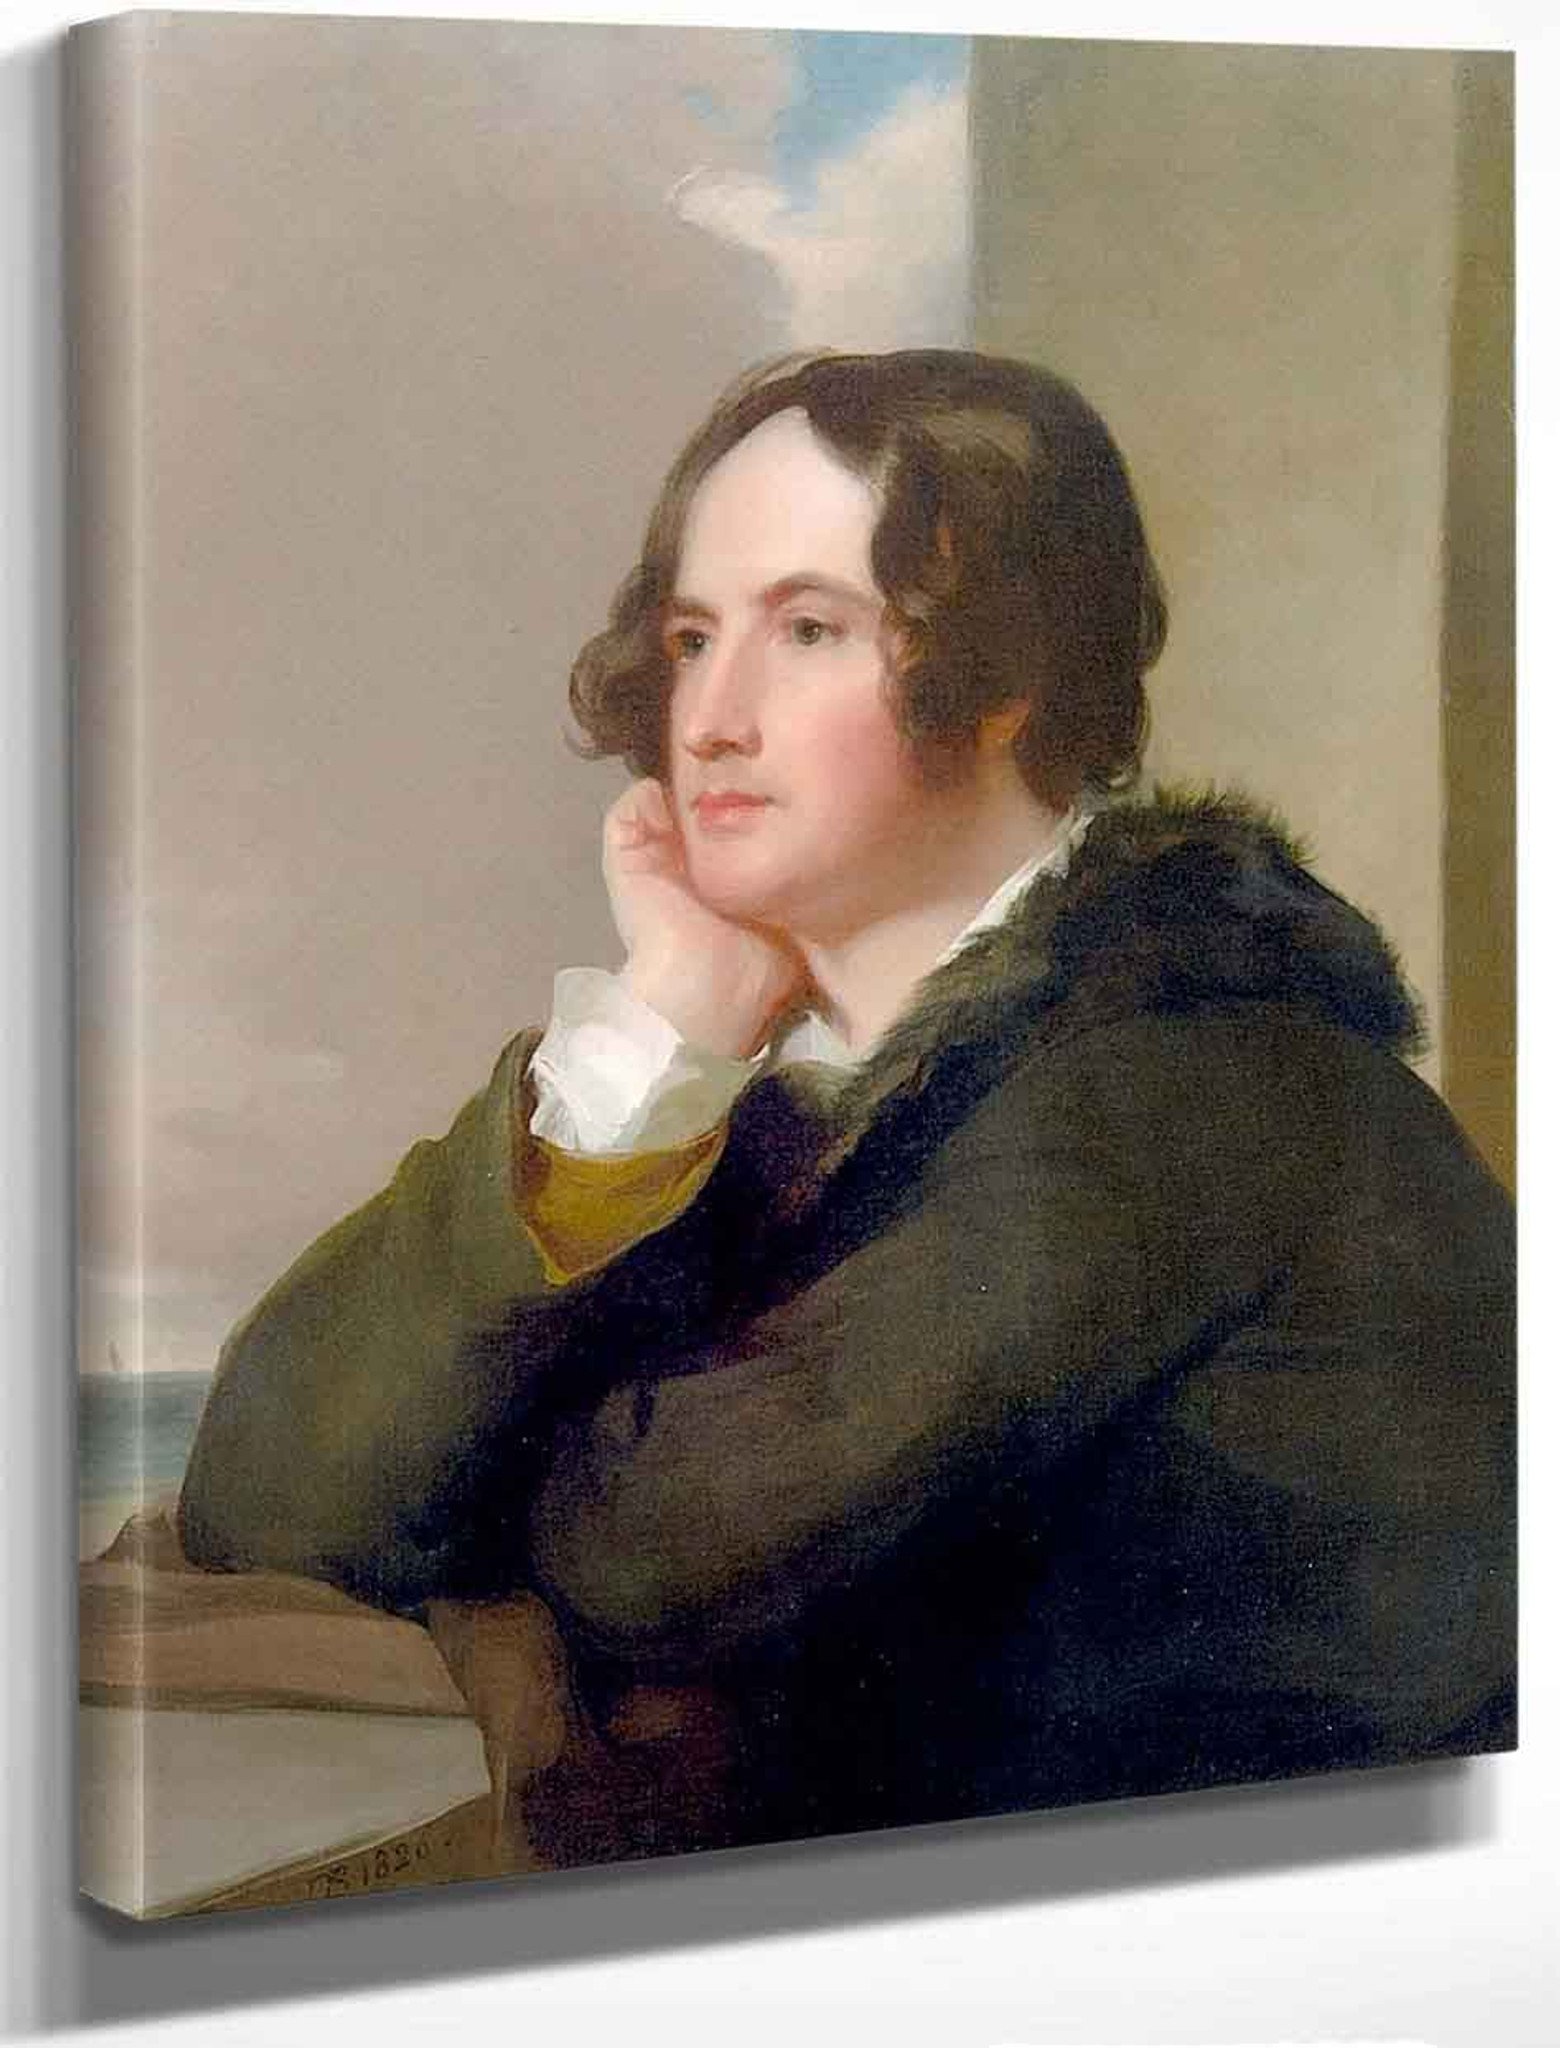 Nicholas Biddle By Thomas Sully Reproduction